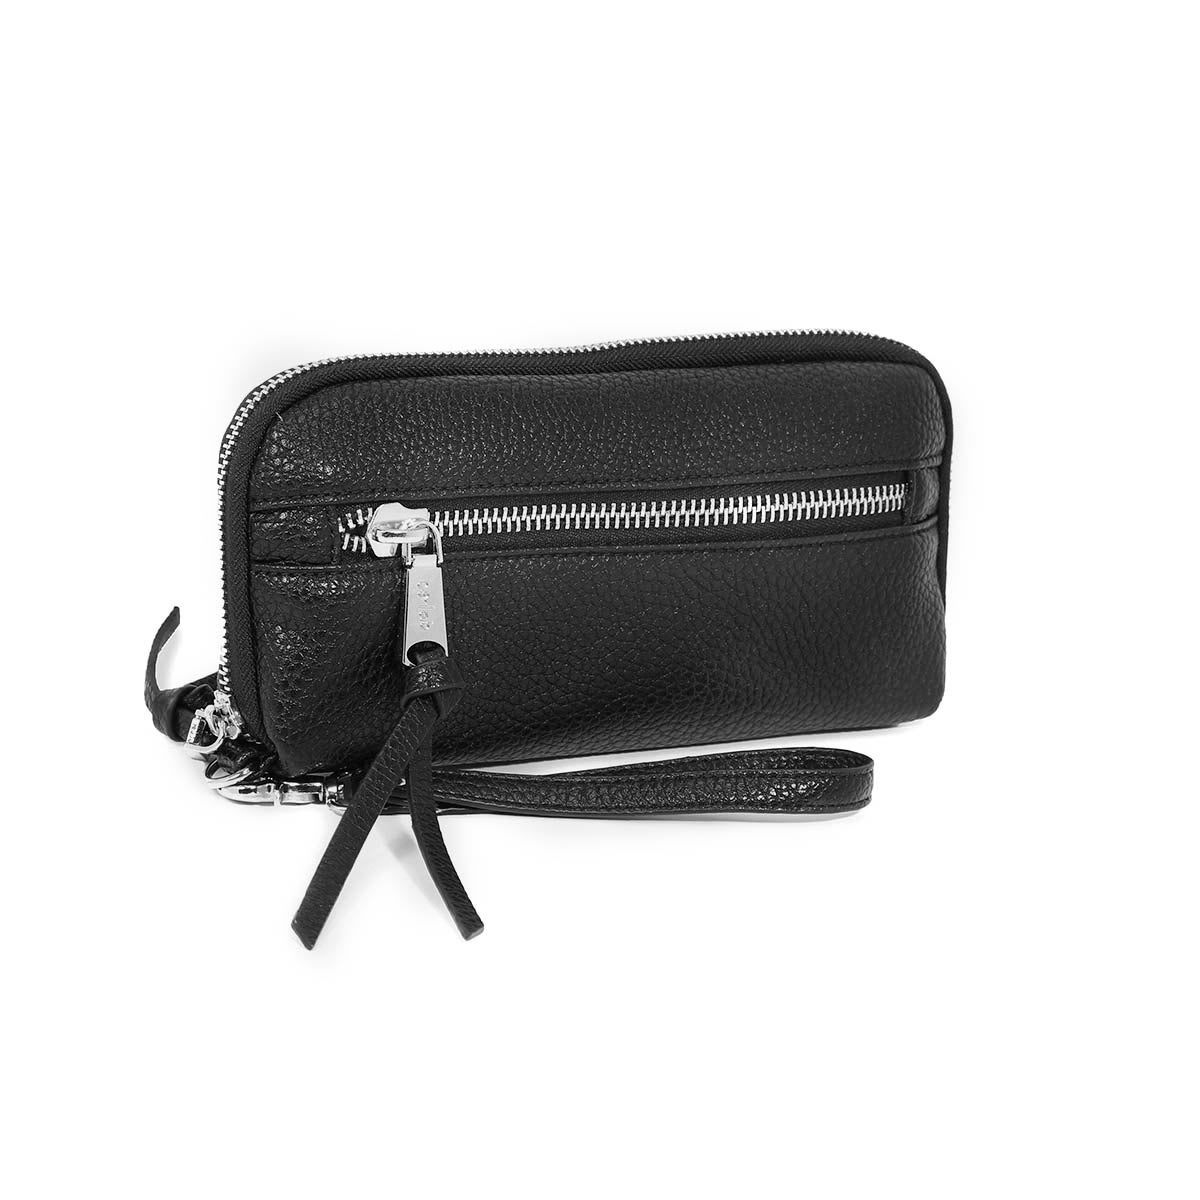 Women's 3001 Wristlet black wallets